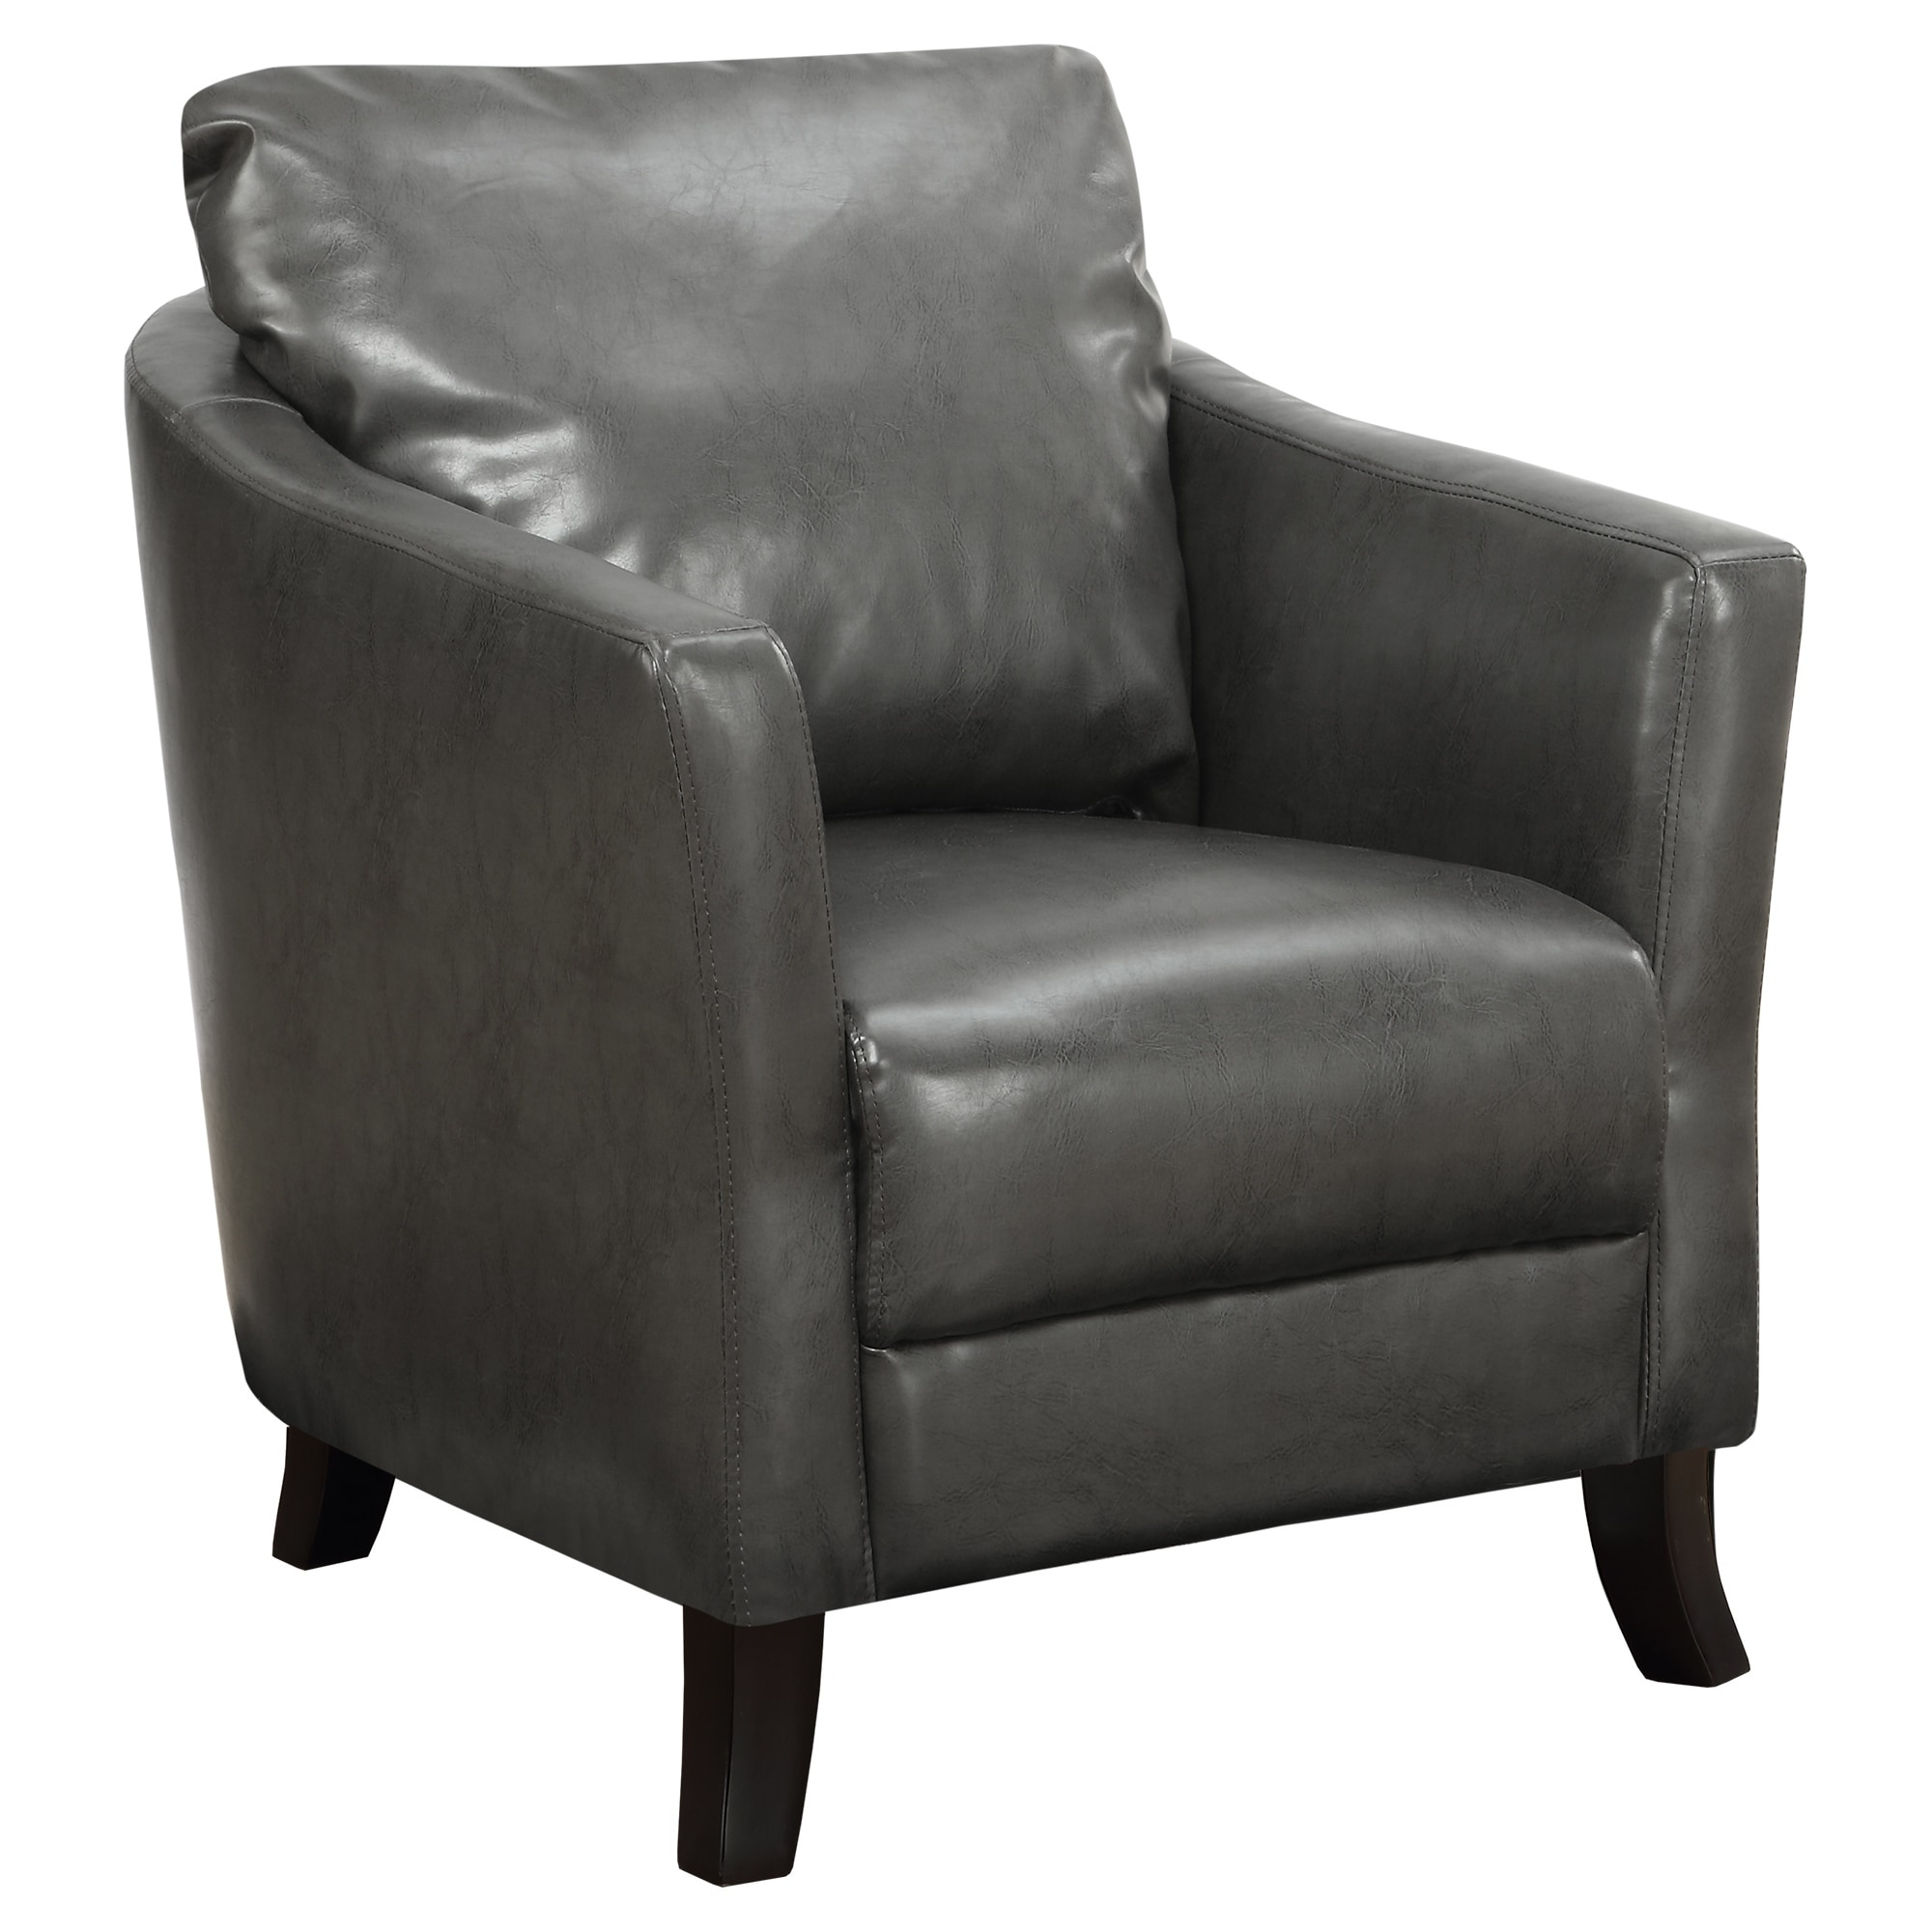 Monarch Charcoal Grey Leather-look Accent Chair (Fabric)